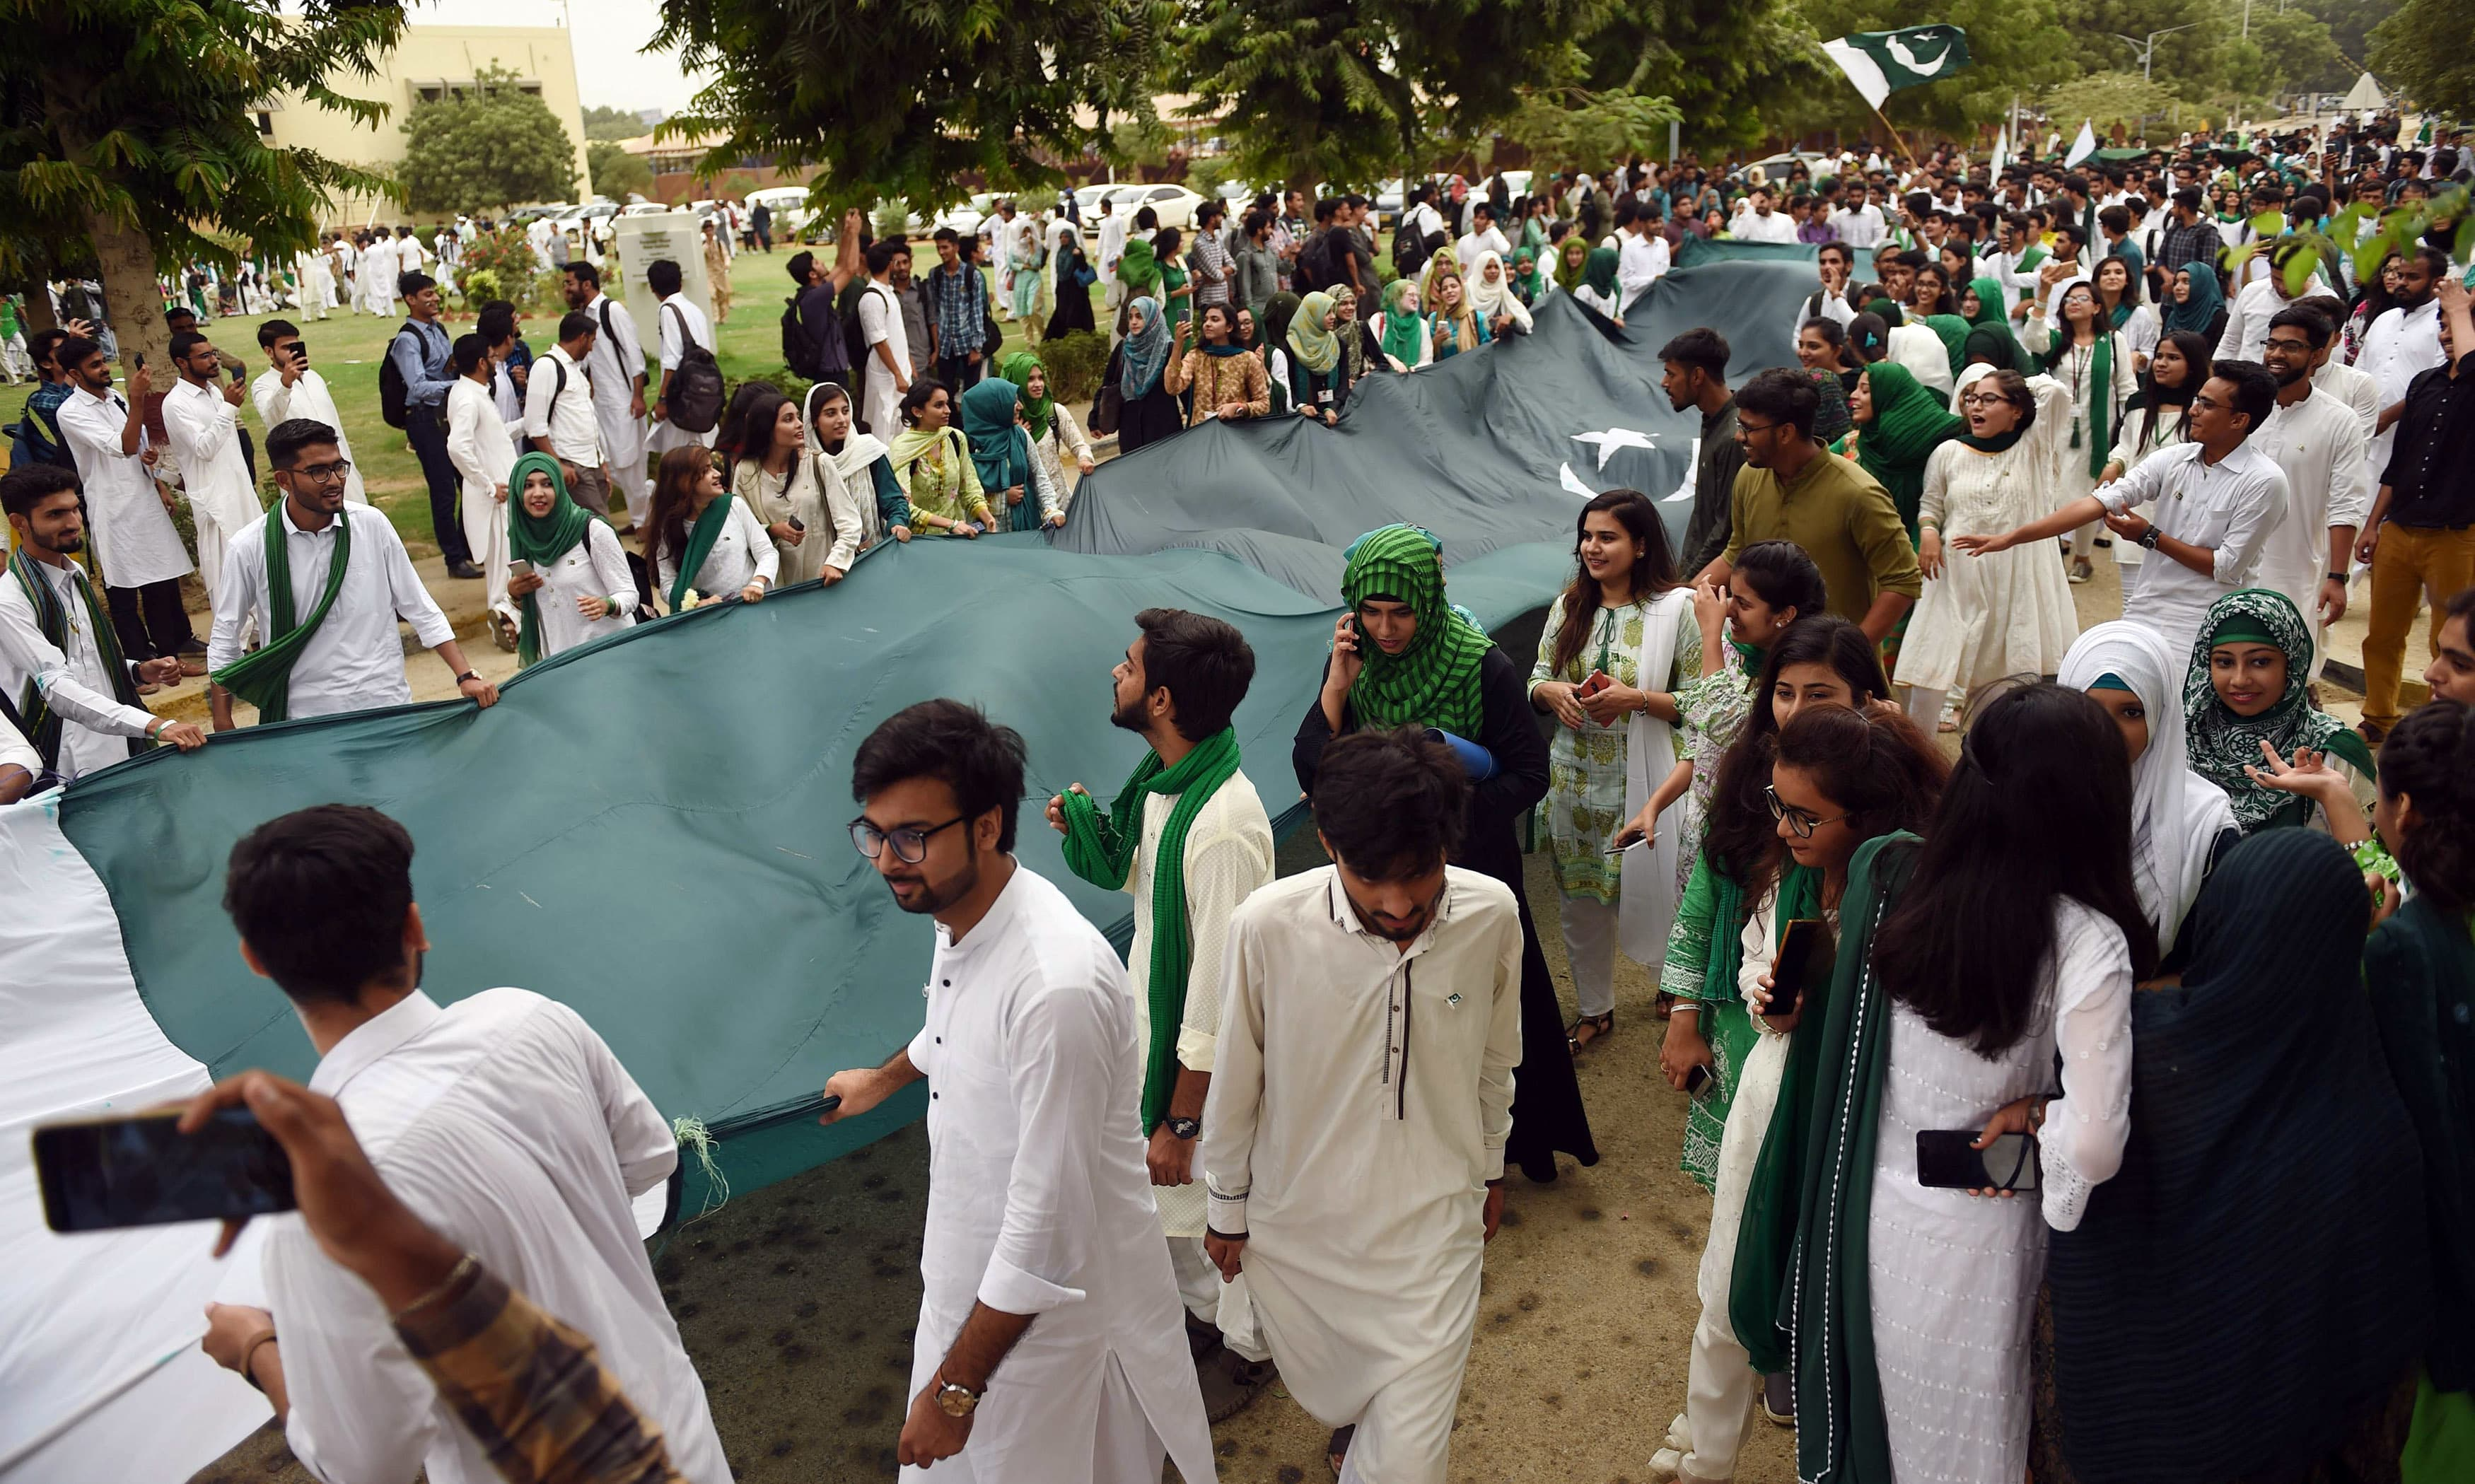 Karachi University students celebrate ahead of the upcoming Independence Day in Karachi. —AFP